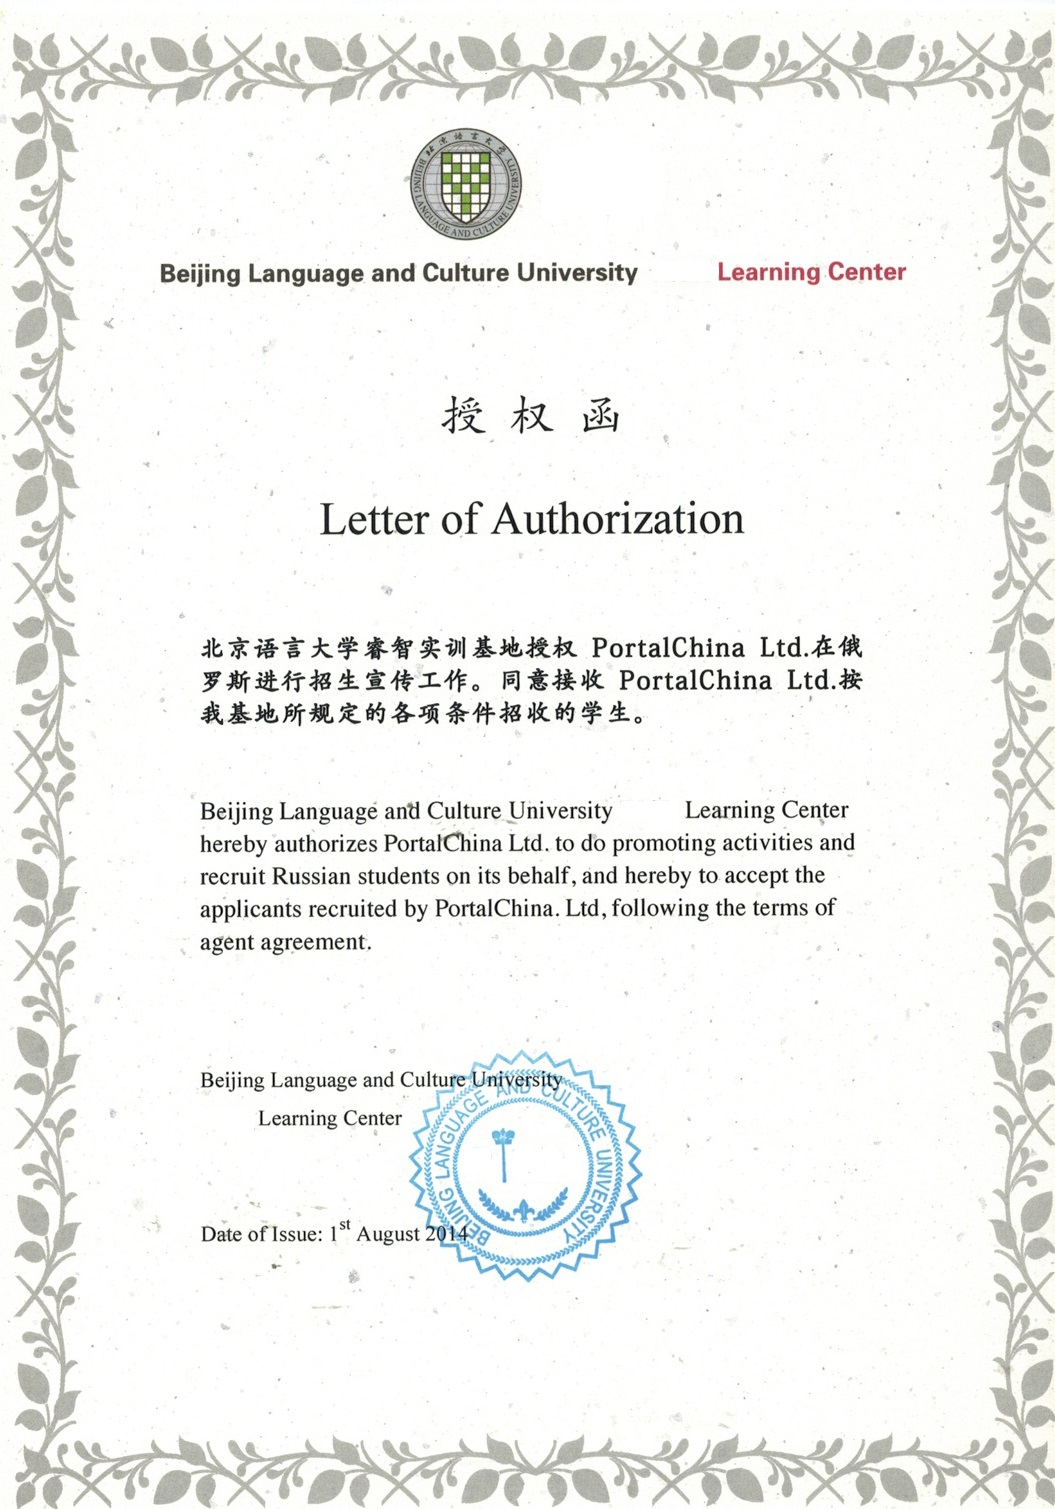 Authorization Letter - BLCU Children